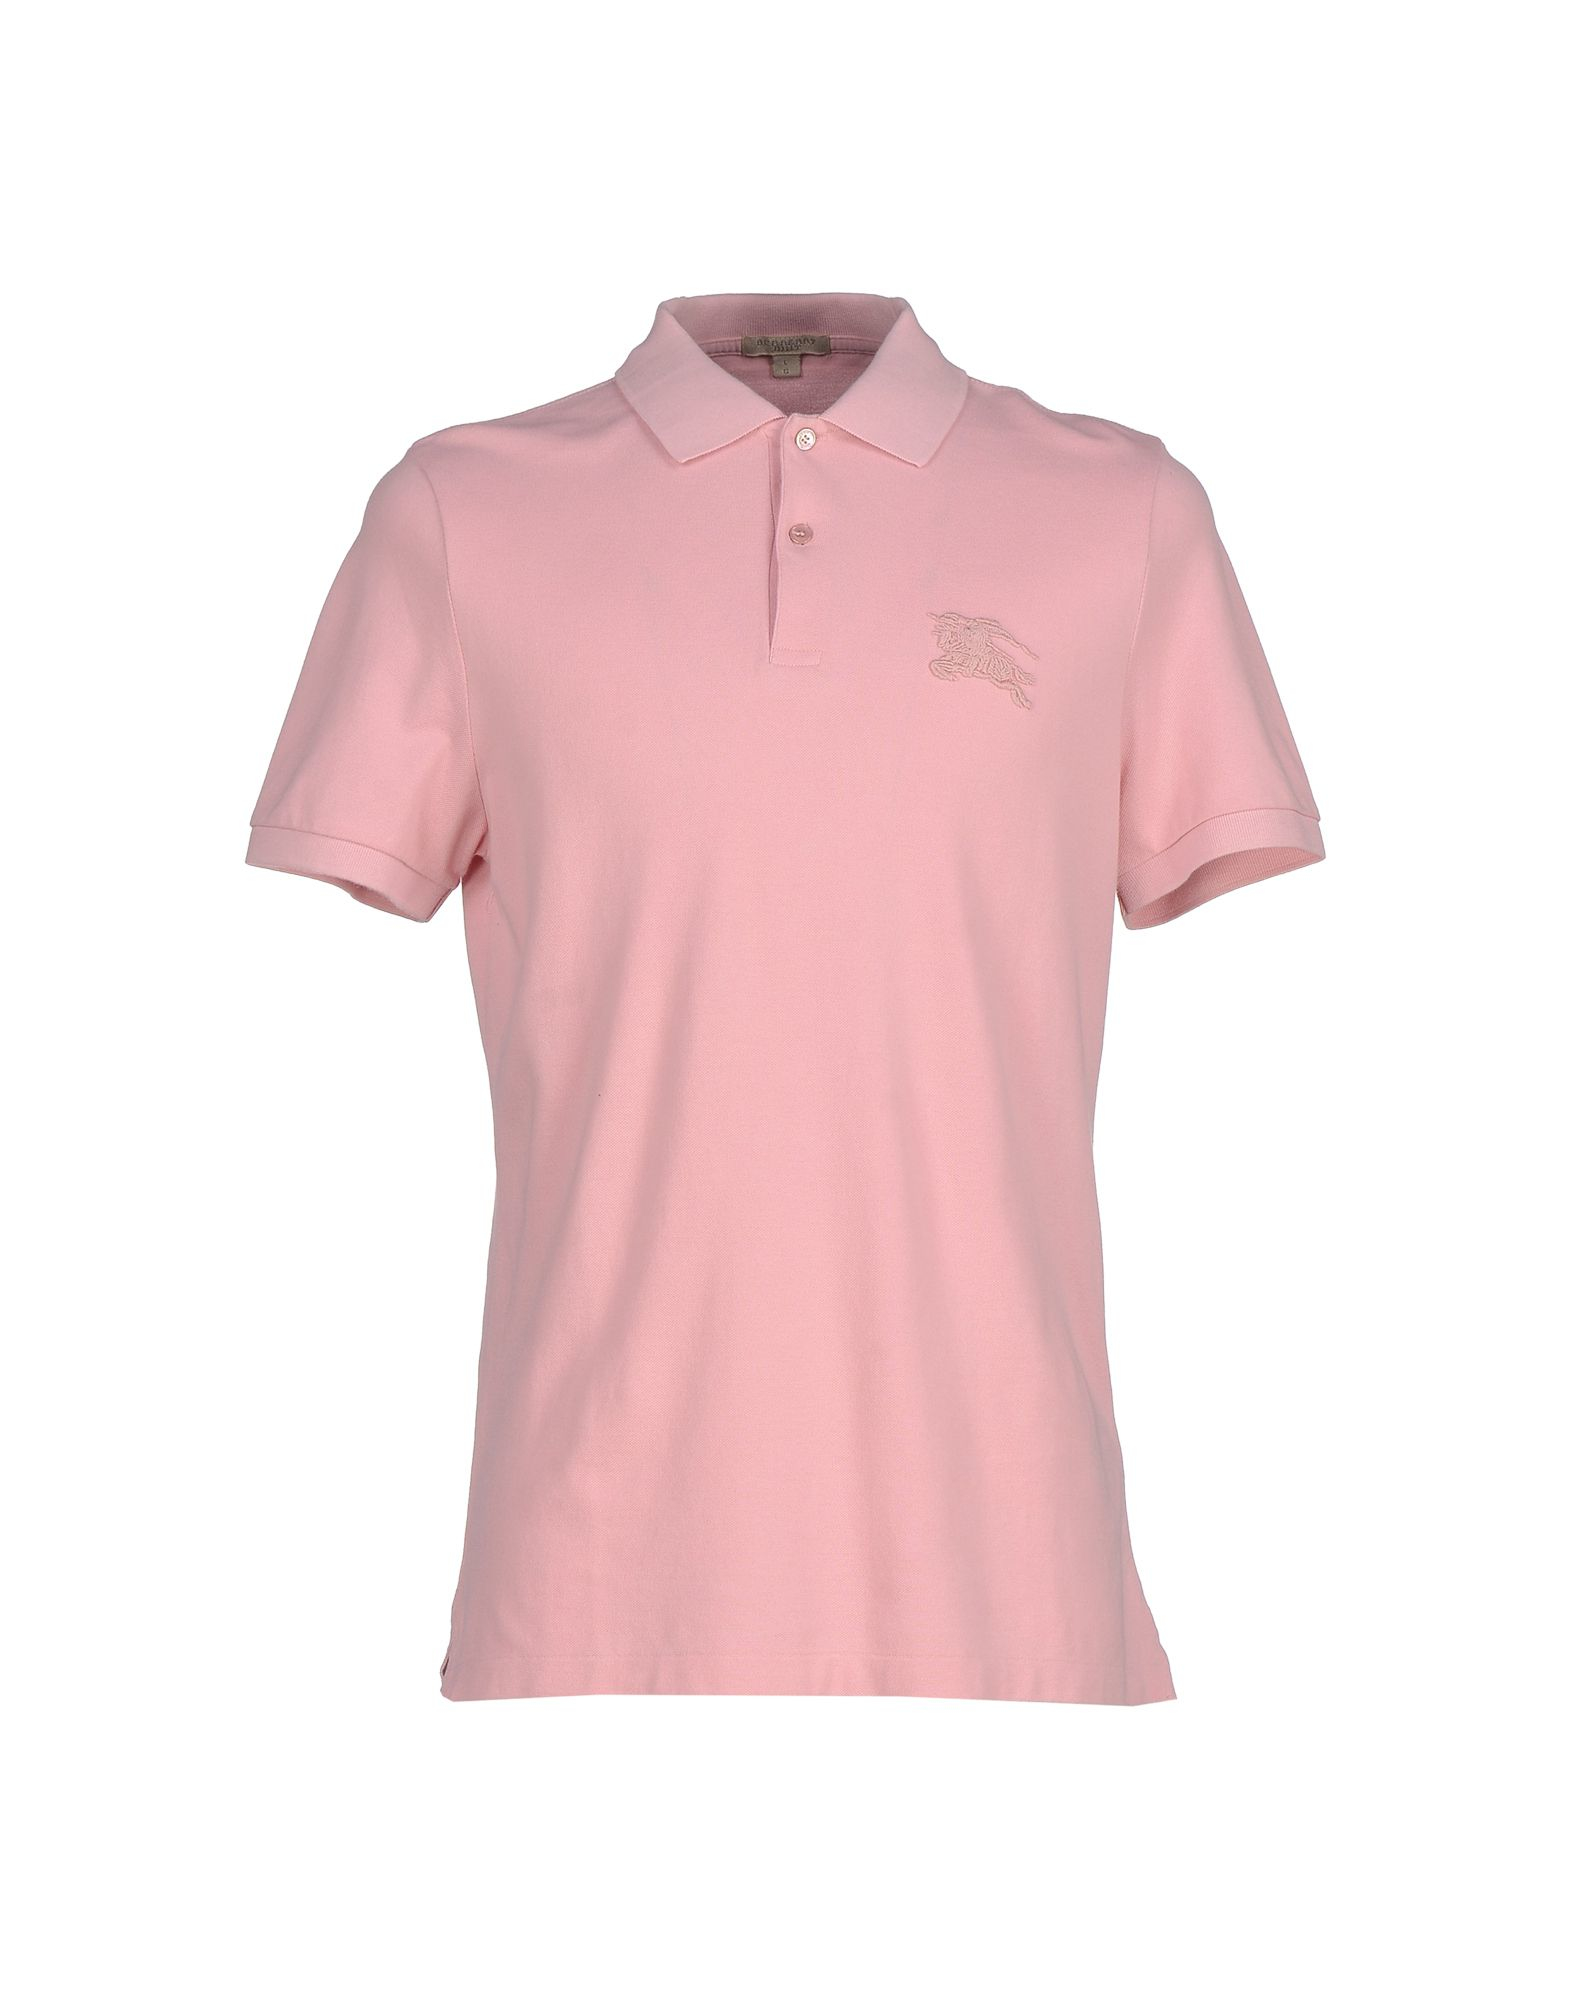 Burberry Brit Polo Shirt In Pink For Men Lyst